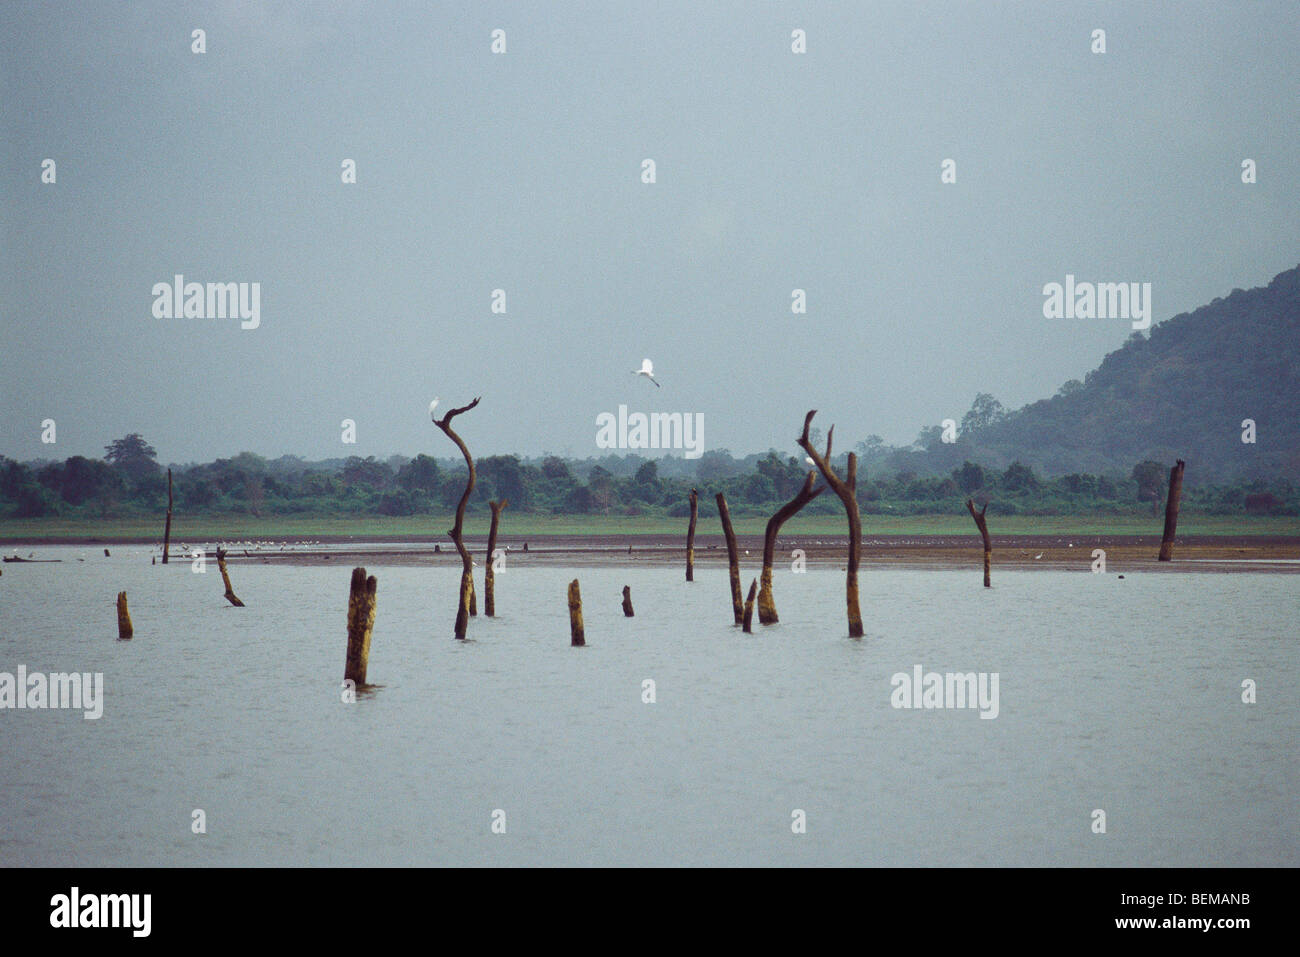 Landscape with dead trees standing in lake and egrets, Sri Lanka - Stock Image